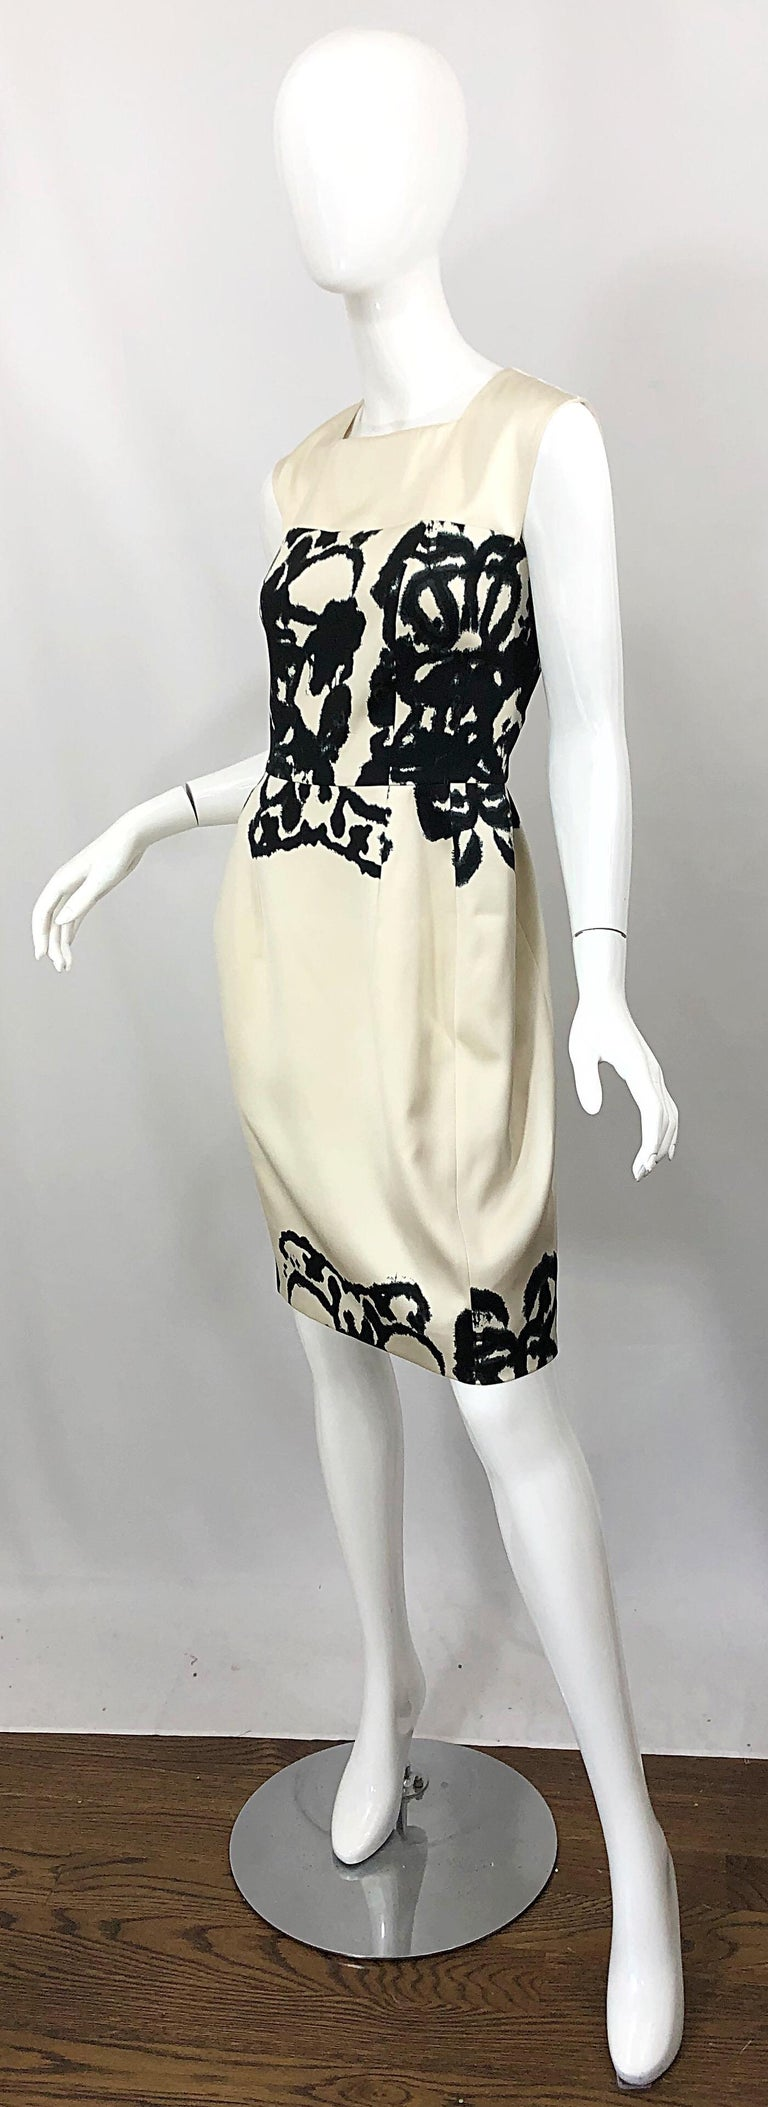 New Yves Saint Laurent Size 42 / 8-10 Ivory and Black Abstract Print Silk Dress For Sale 2